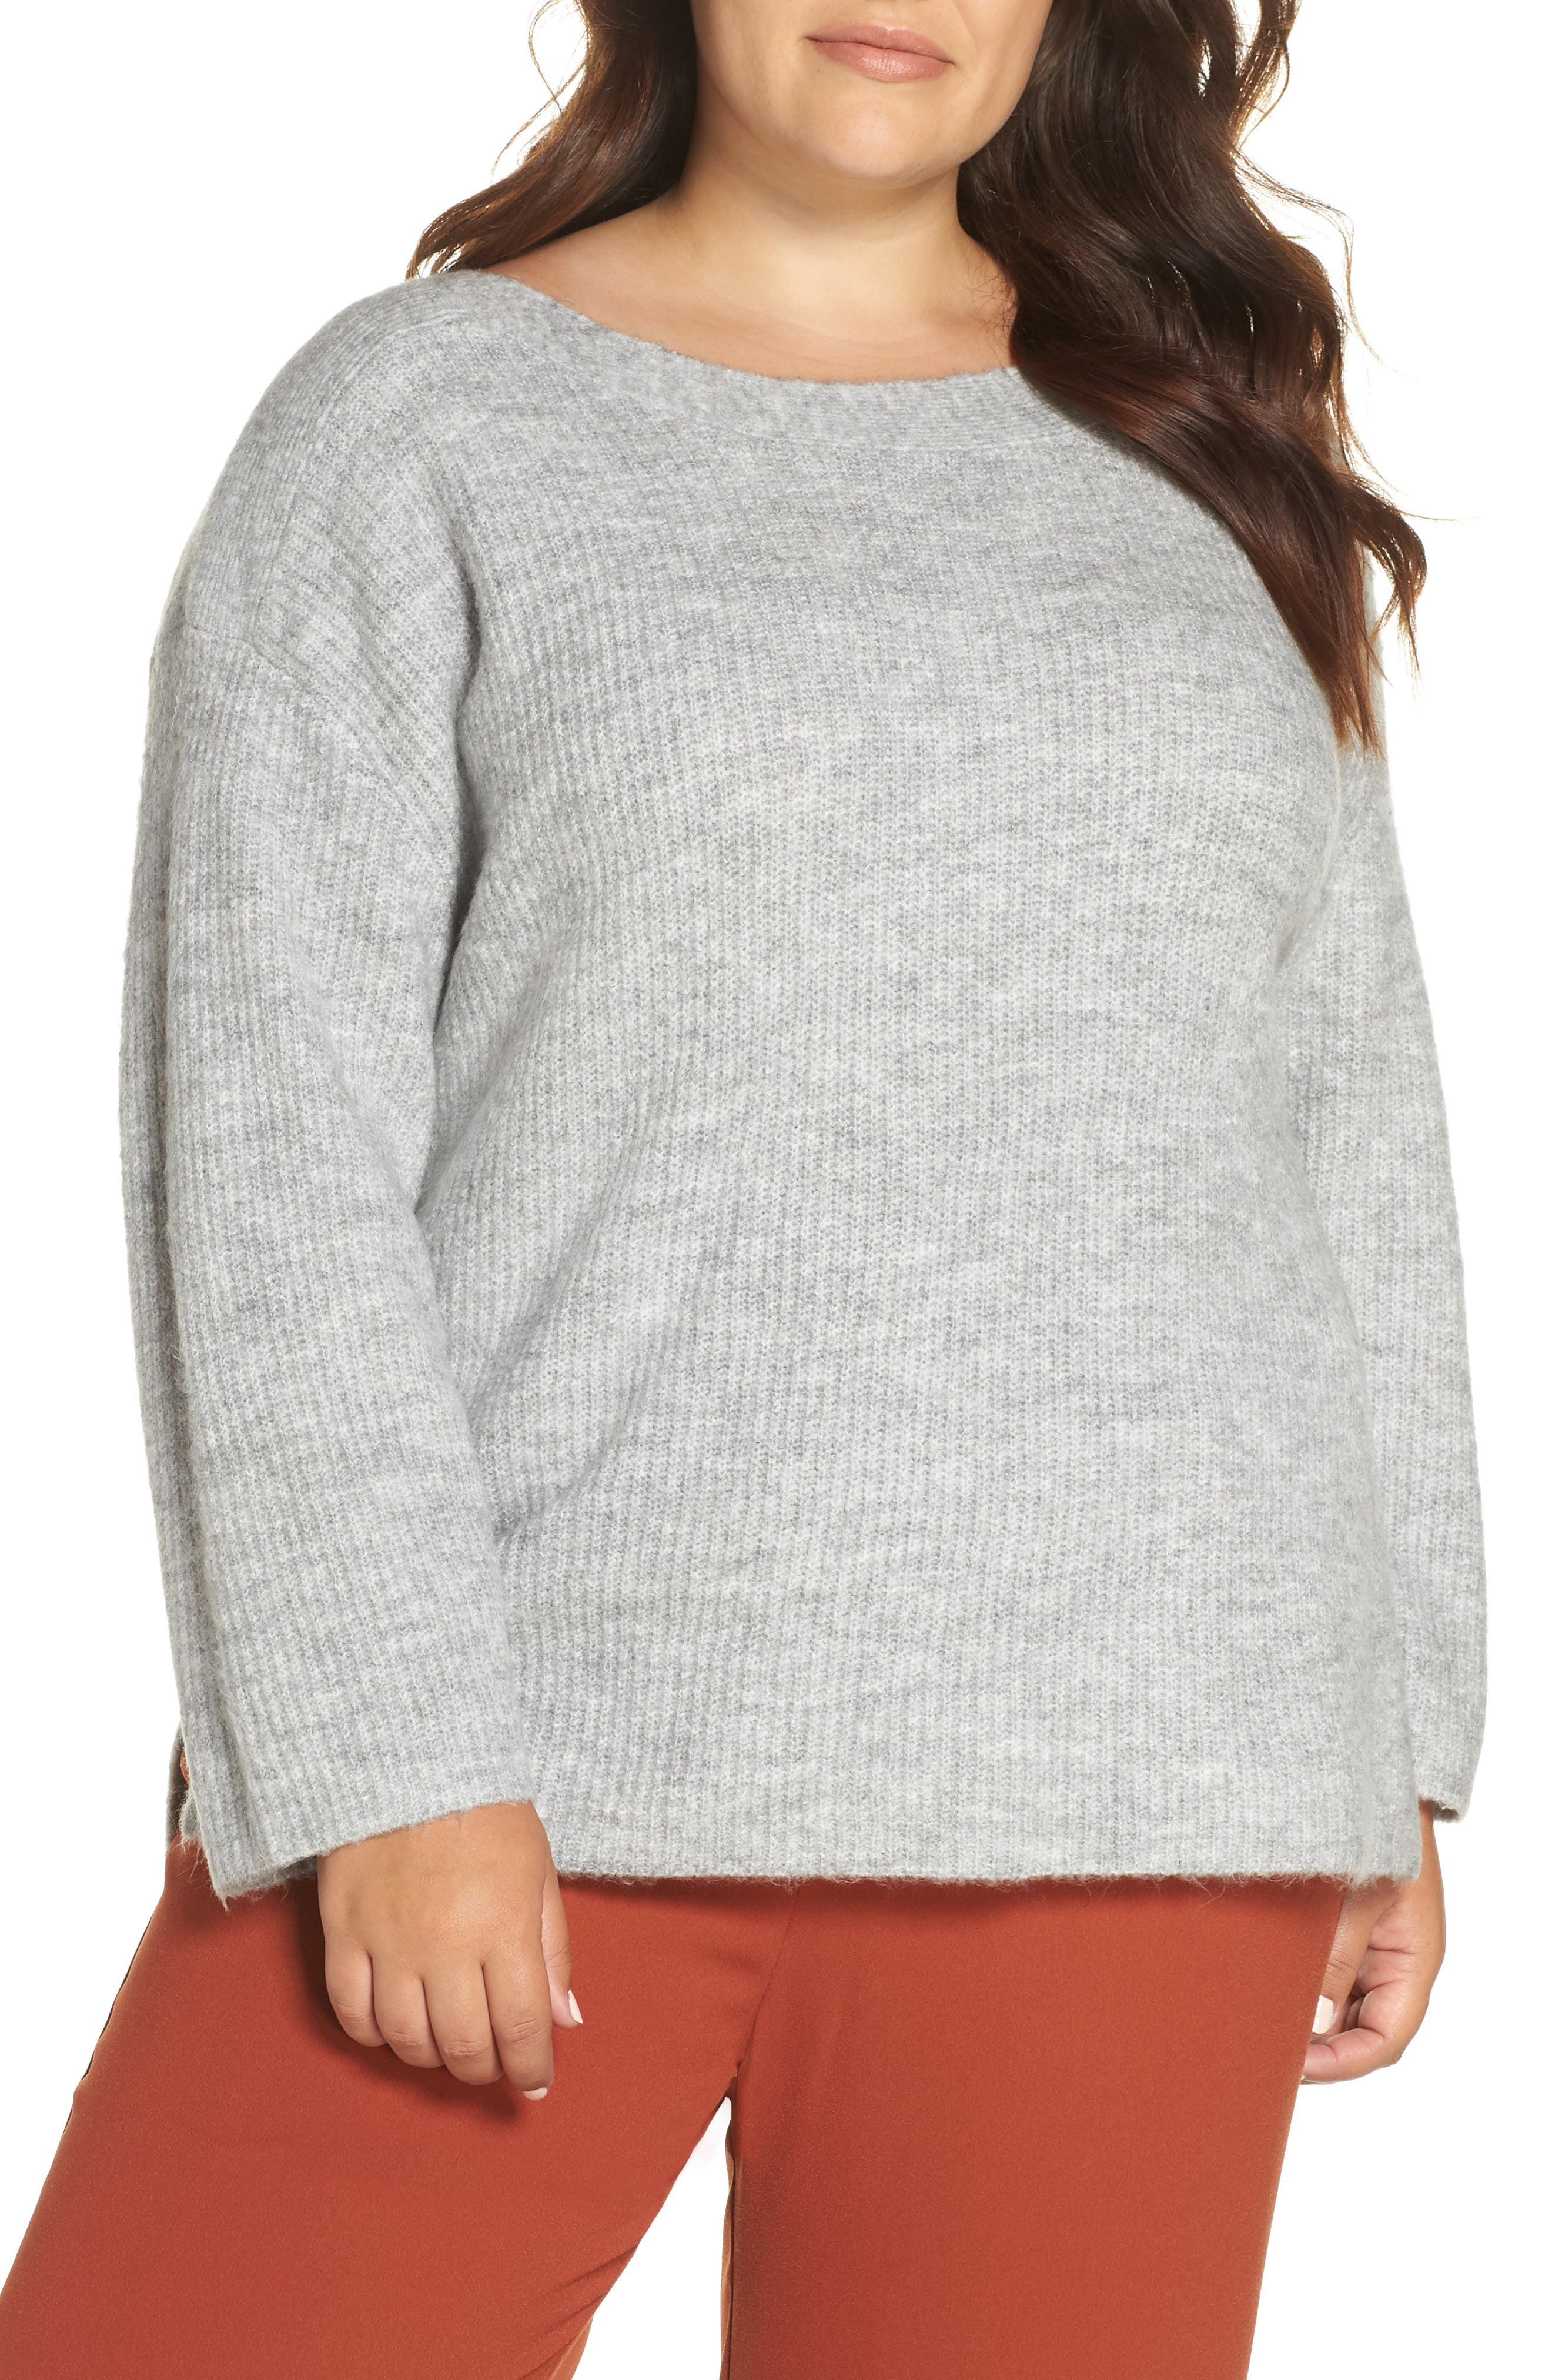 Cozy Femme Pullover Sweater,                         Main,                         color, 031